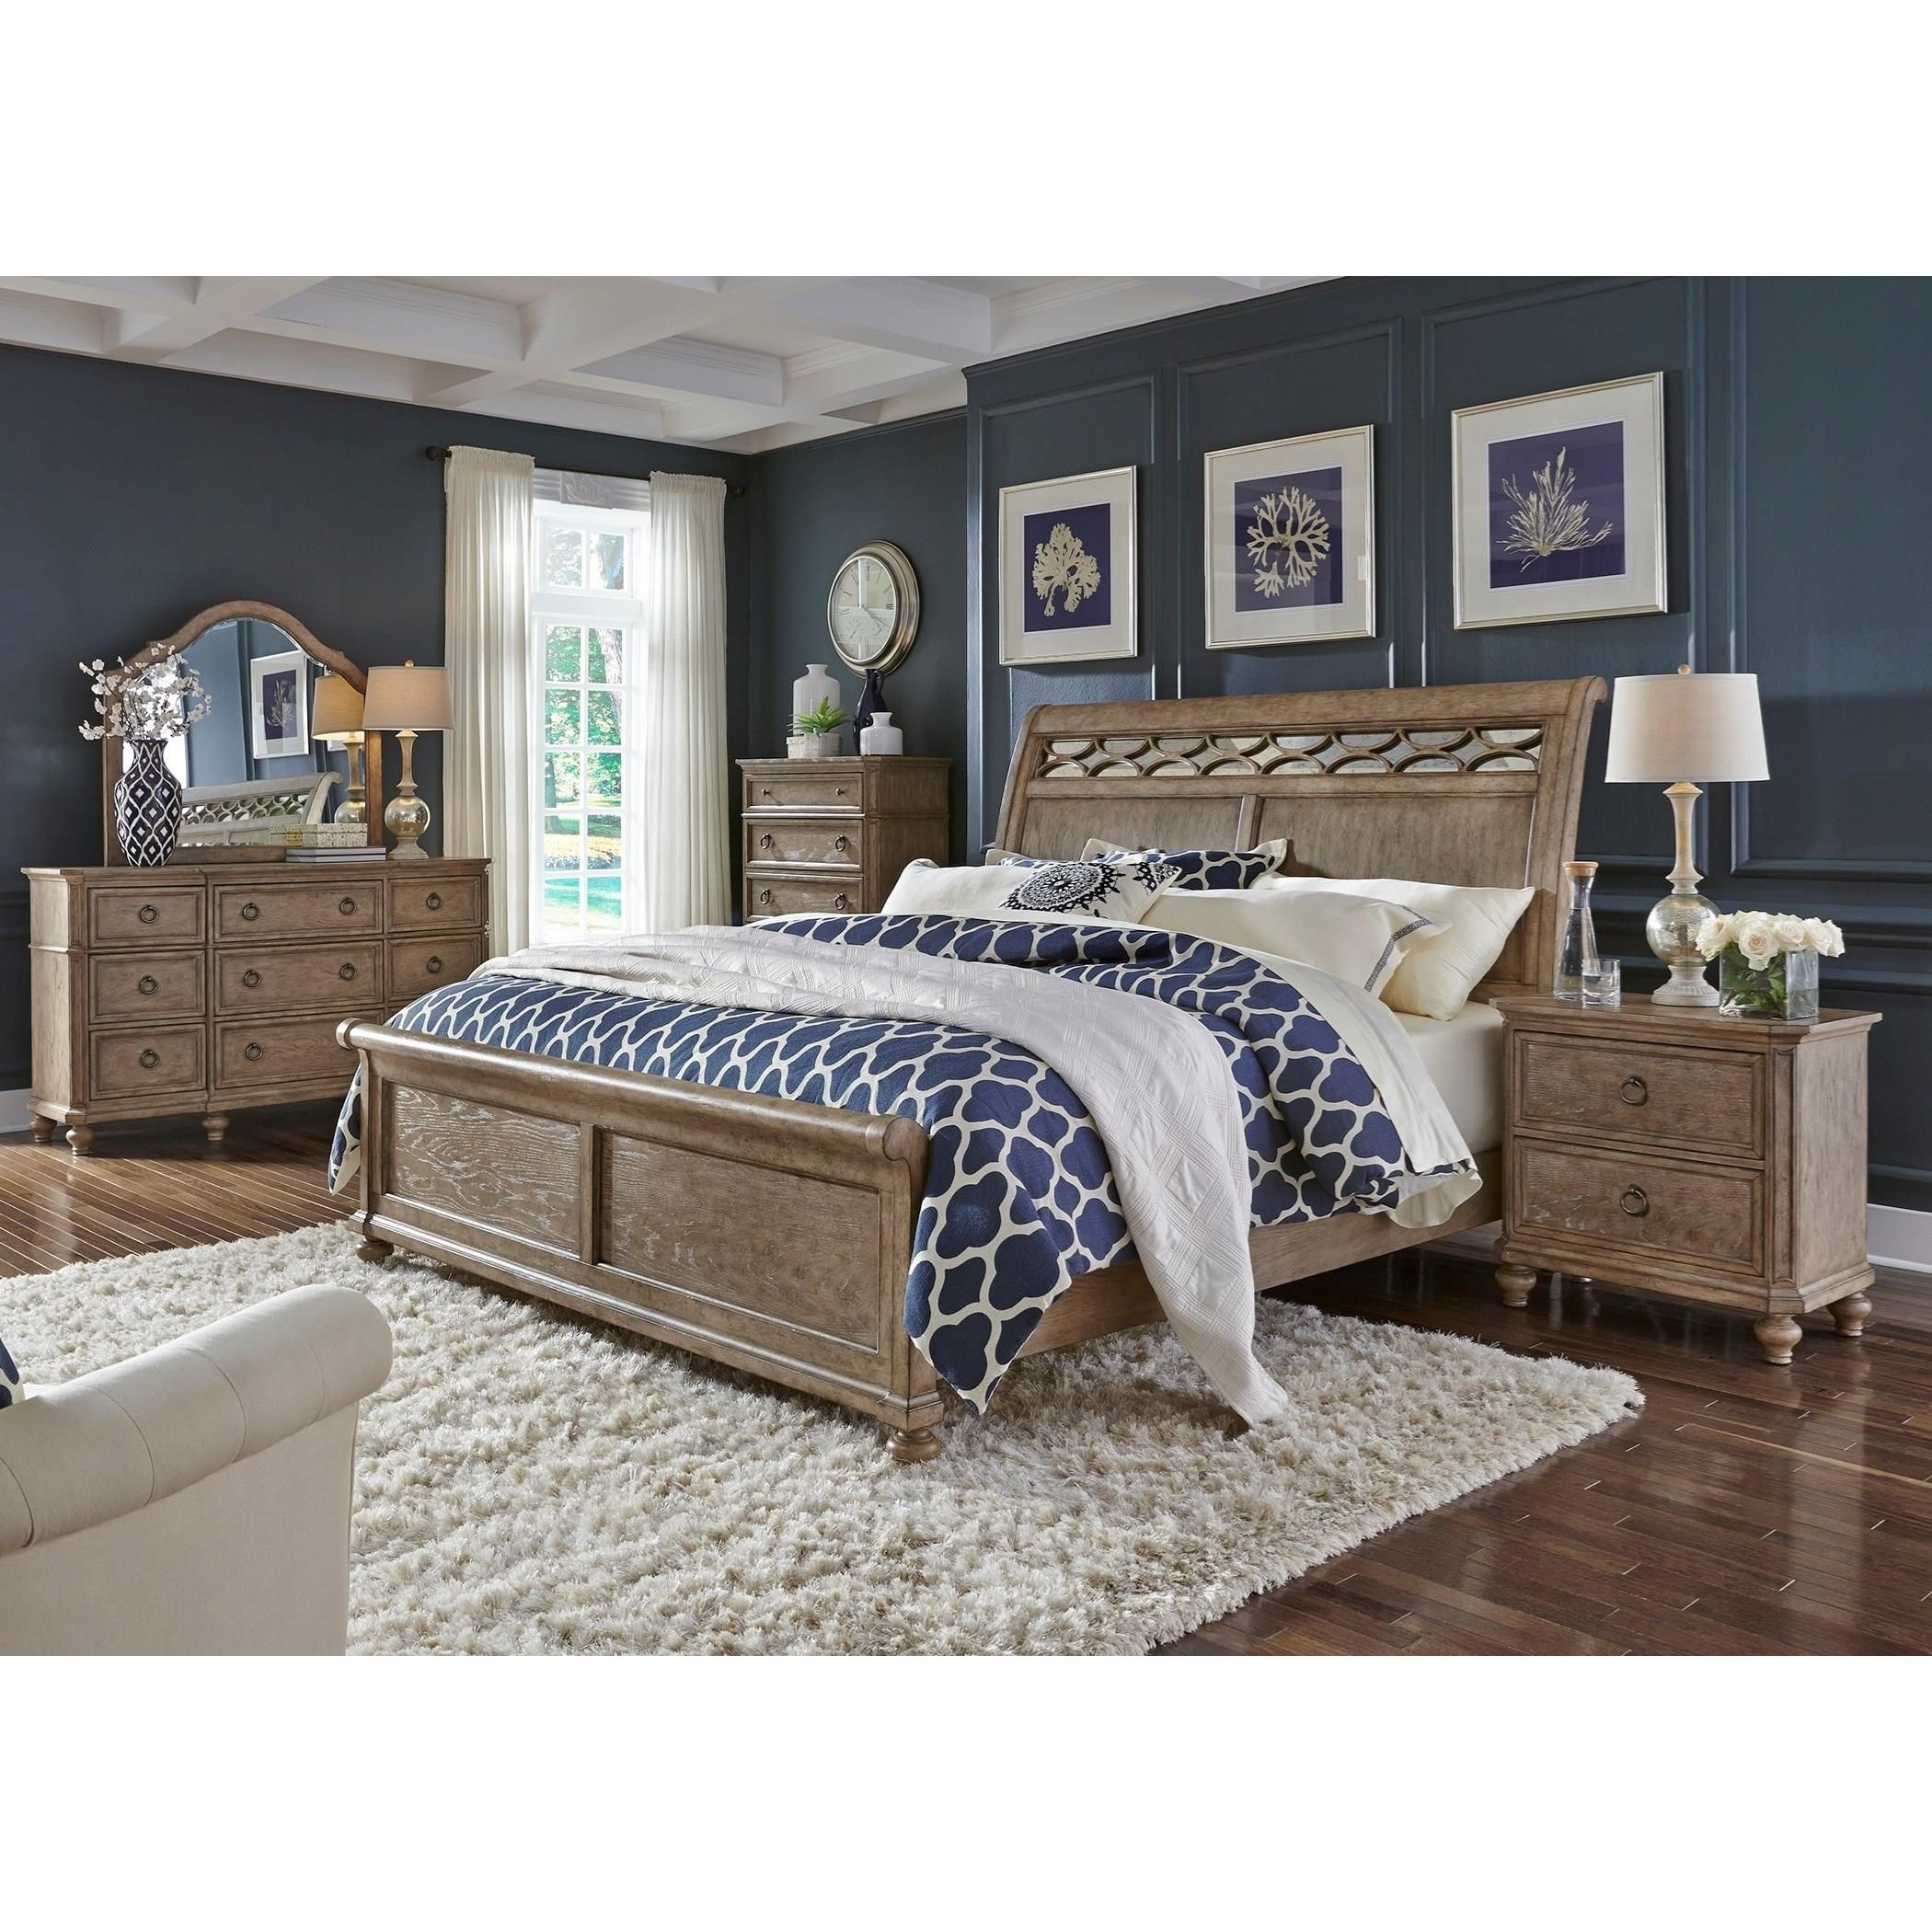 Liberty Furniture Simply Elegant King Sleigh Bed With Mirror Accent Headboard Royal Furniture